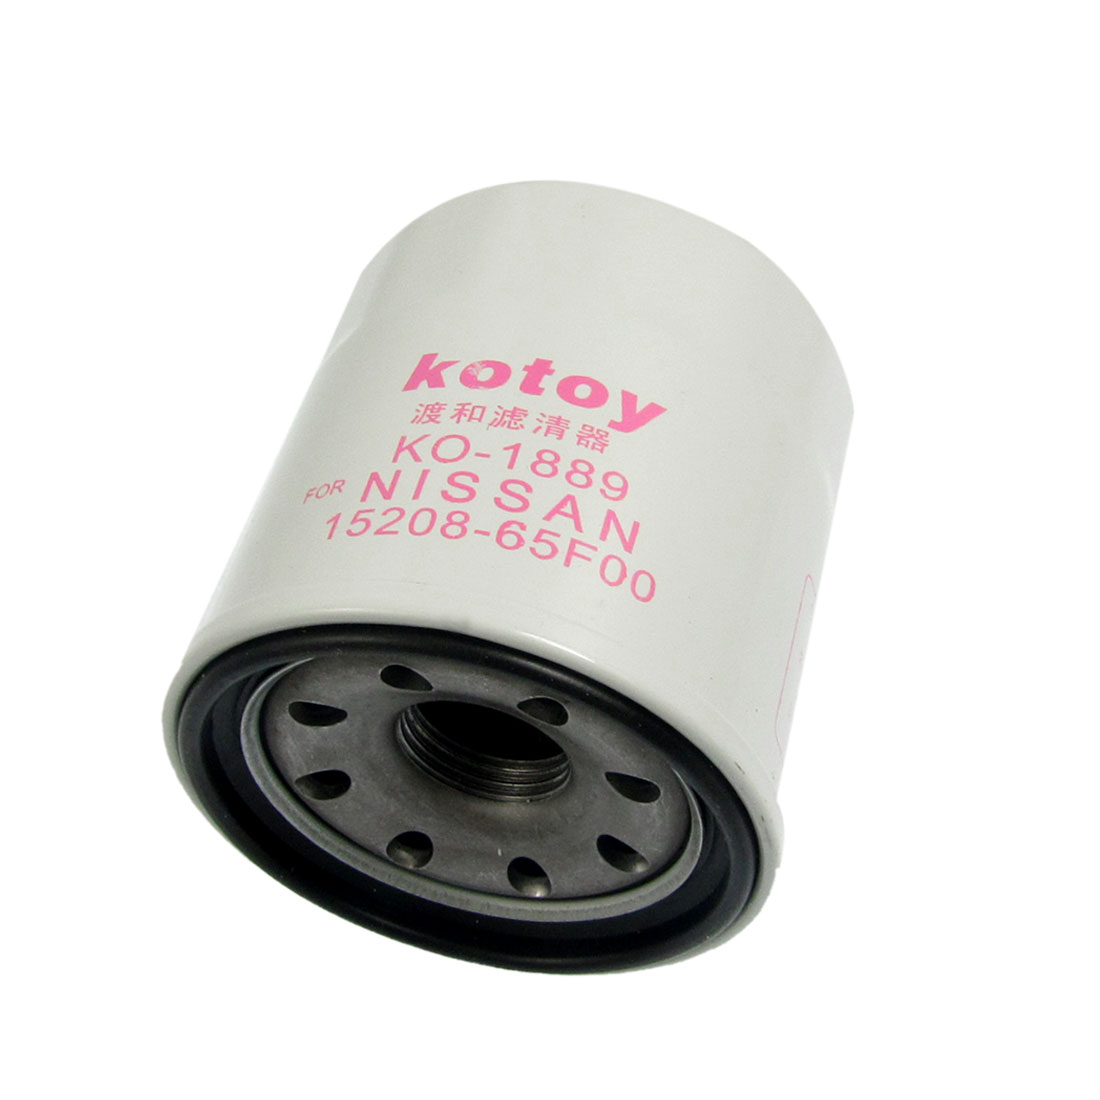 White Oil Filter for Infiniti EX35 G20 G25 G35 G37 M35 M35h Hybrid M37